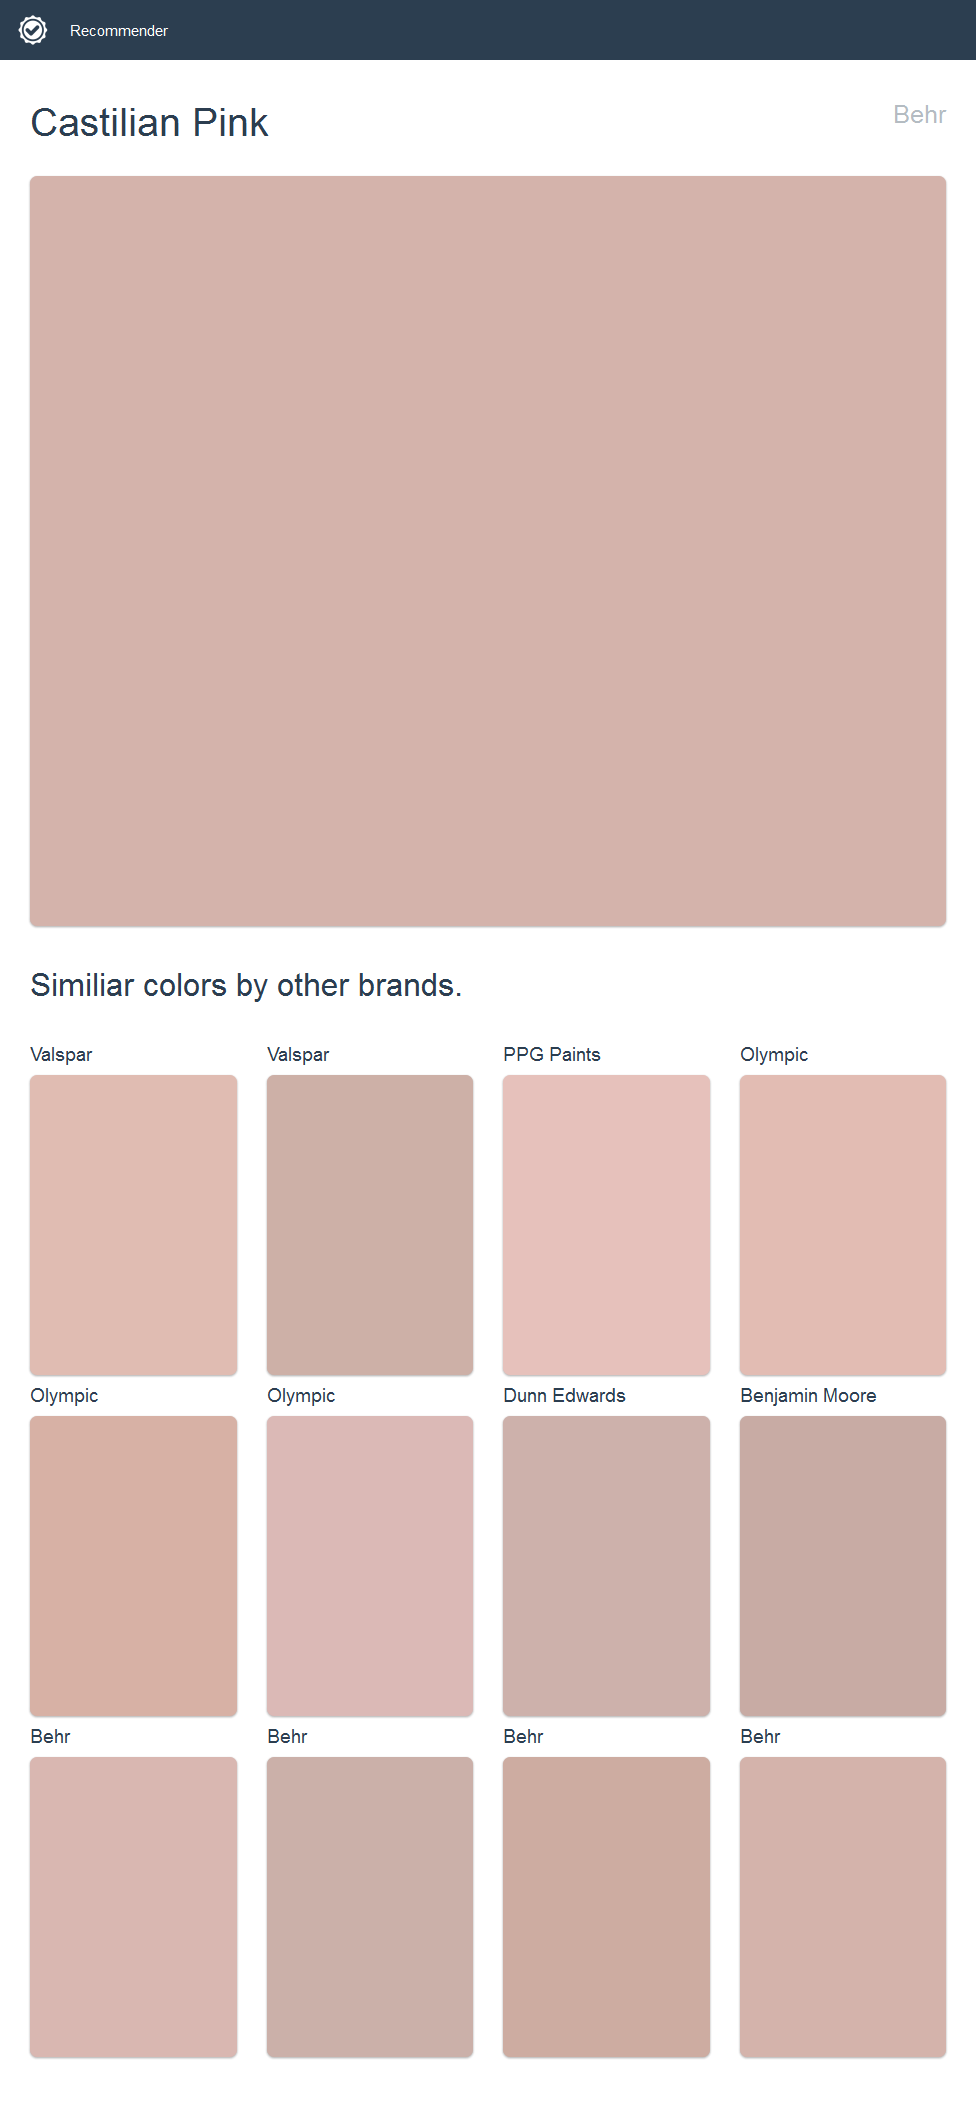 Castilian Pink, Behr. Click the image to see similiar colors by ...